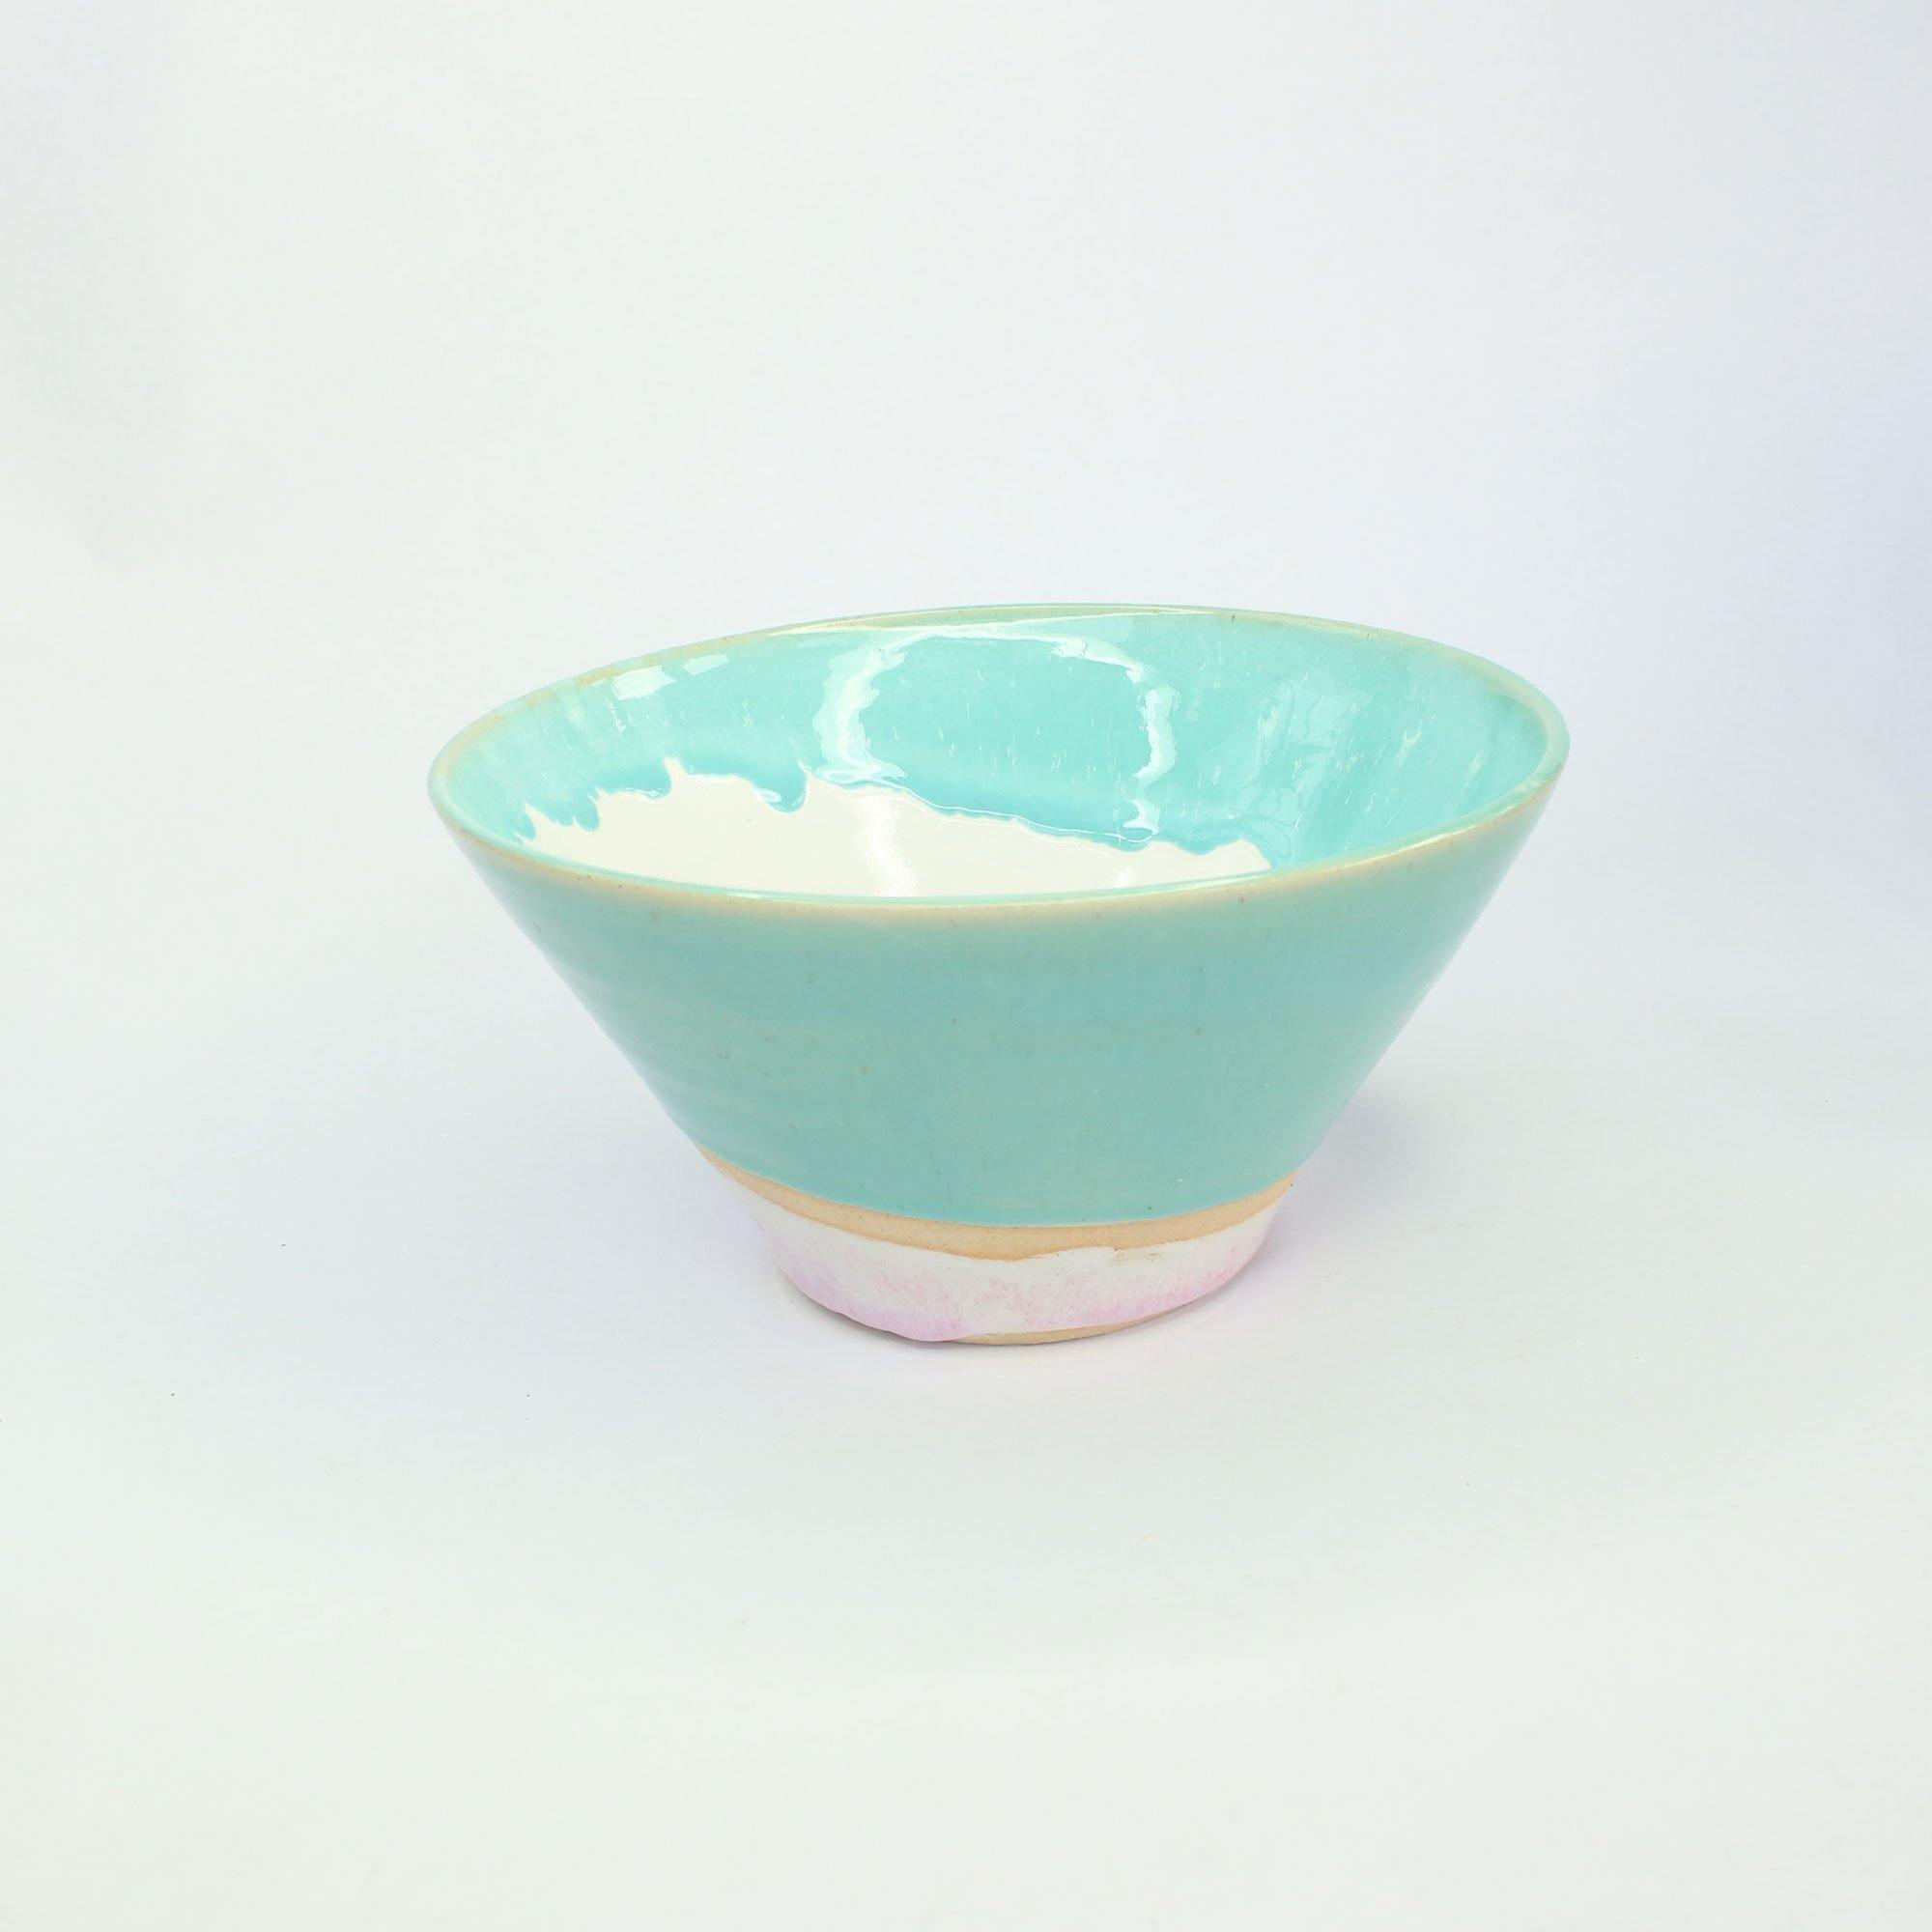 Serving Bowl Handmade With Pink & Turquoise Glaze by  Insideout